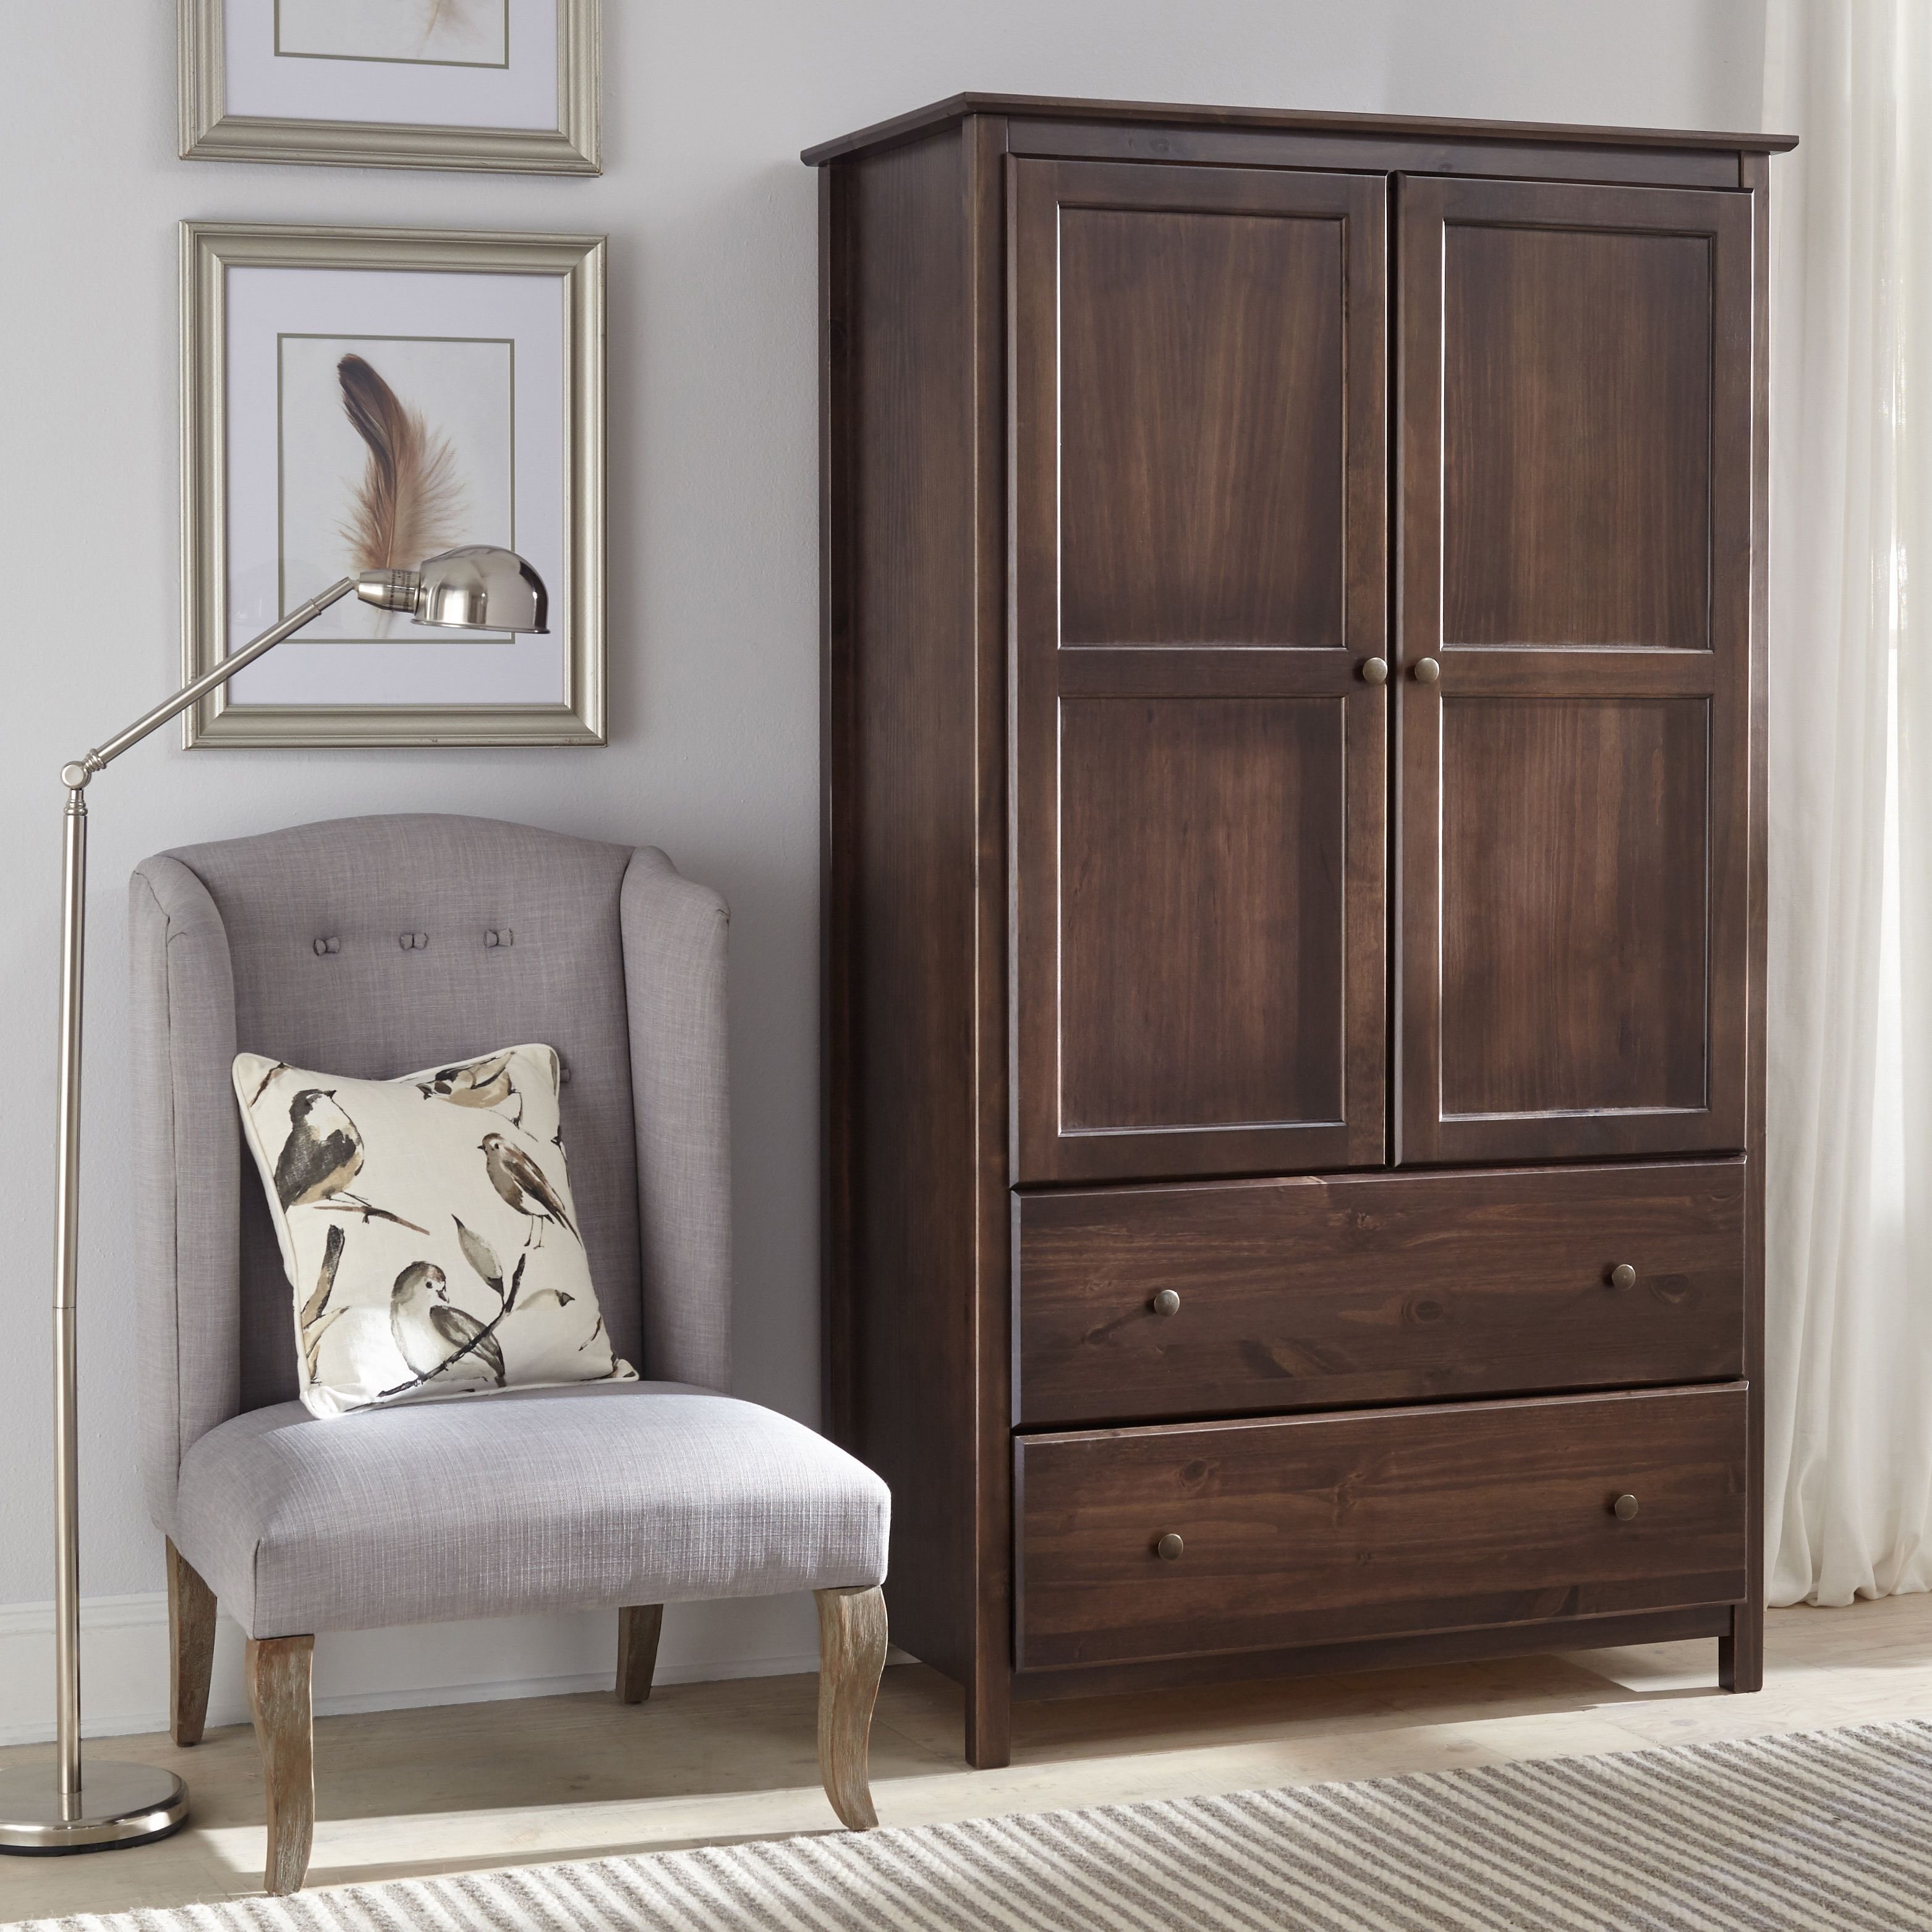 Grain wood furniture shaker style espresso brown 2 door - Espresso brown bedroom furniture ...